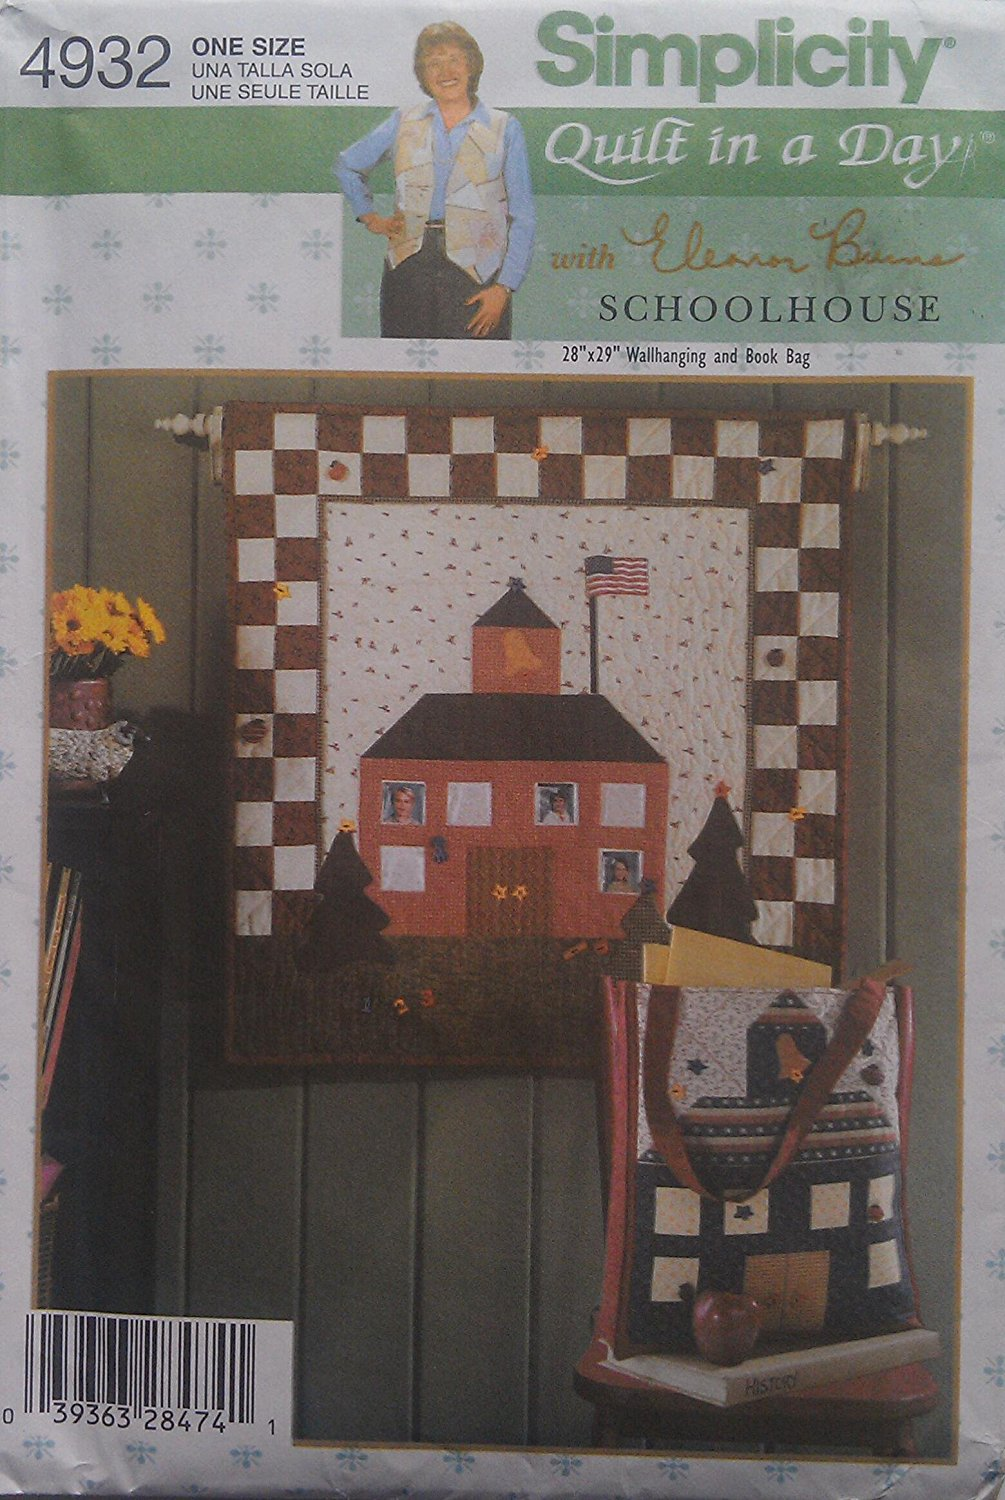 Simplicity Pattern 4932 Schoolhouse Quilt in a Day with Eleanor Burns